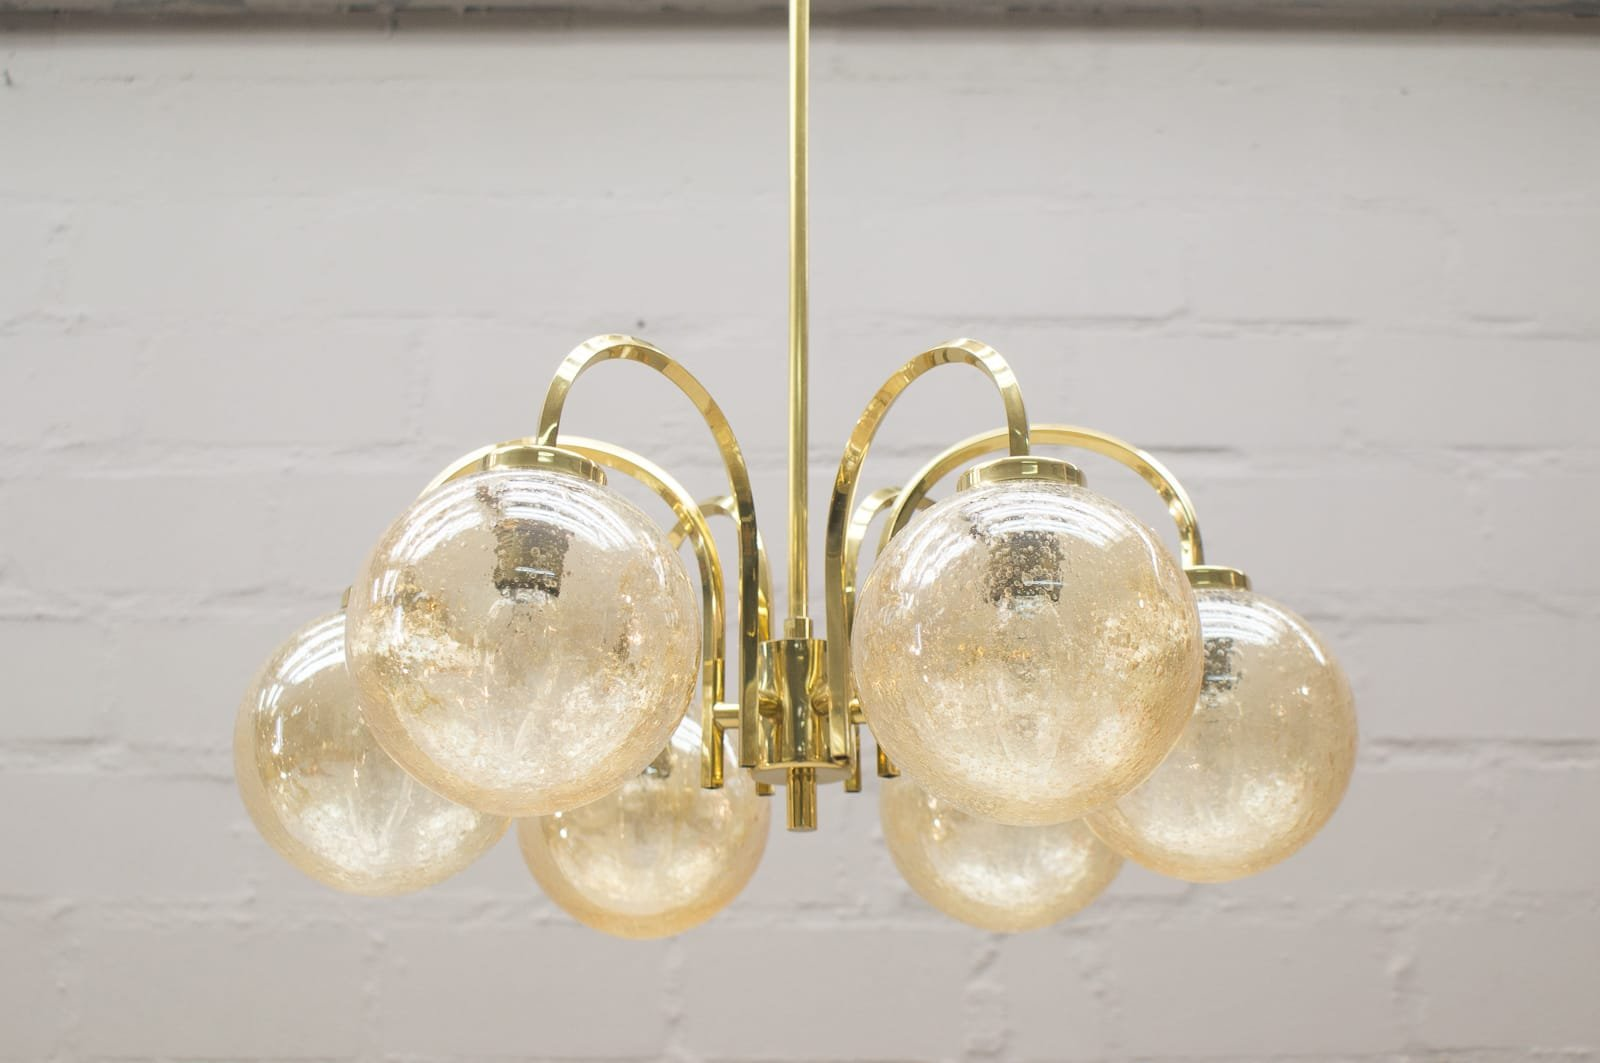 goldene vintage deckenlampe mit 6 leuchten 1960er bei. Black Bedroom Furniture Sets. Home Design Ideas